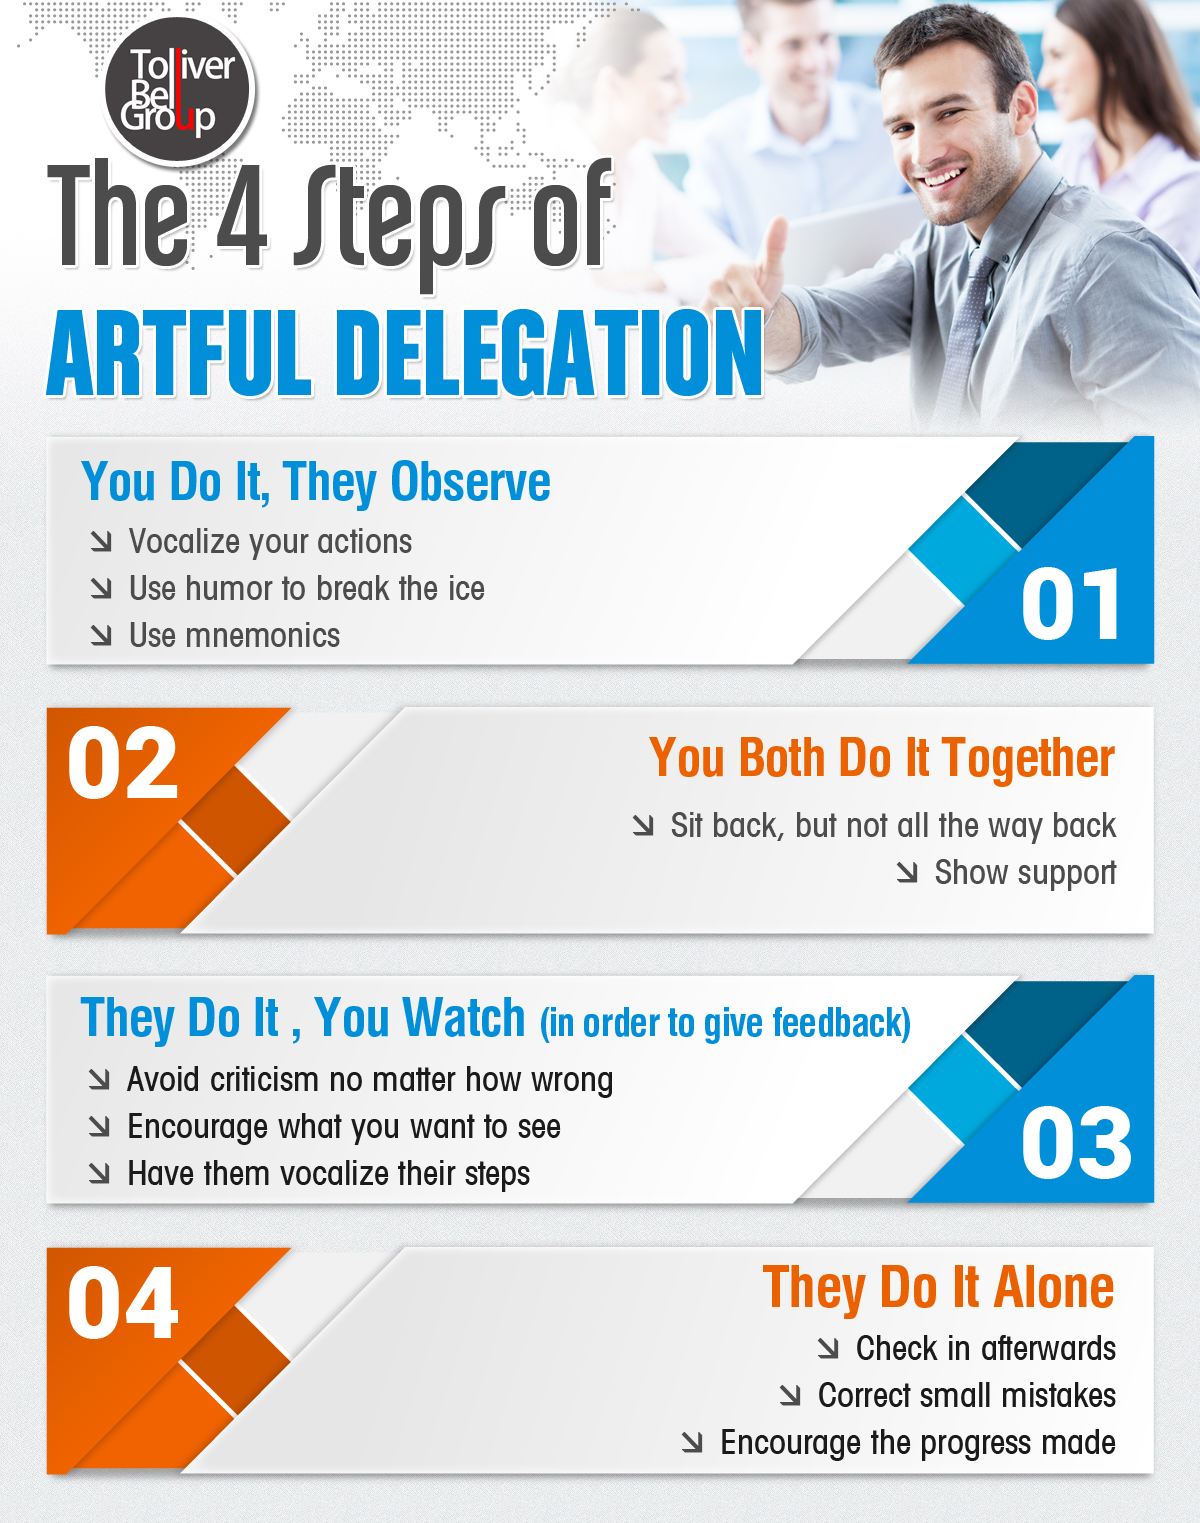 4 Steps of Artful Delegation for You or Your Office Manager.